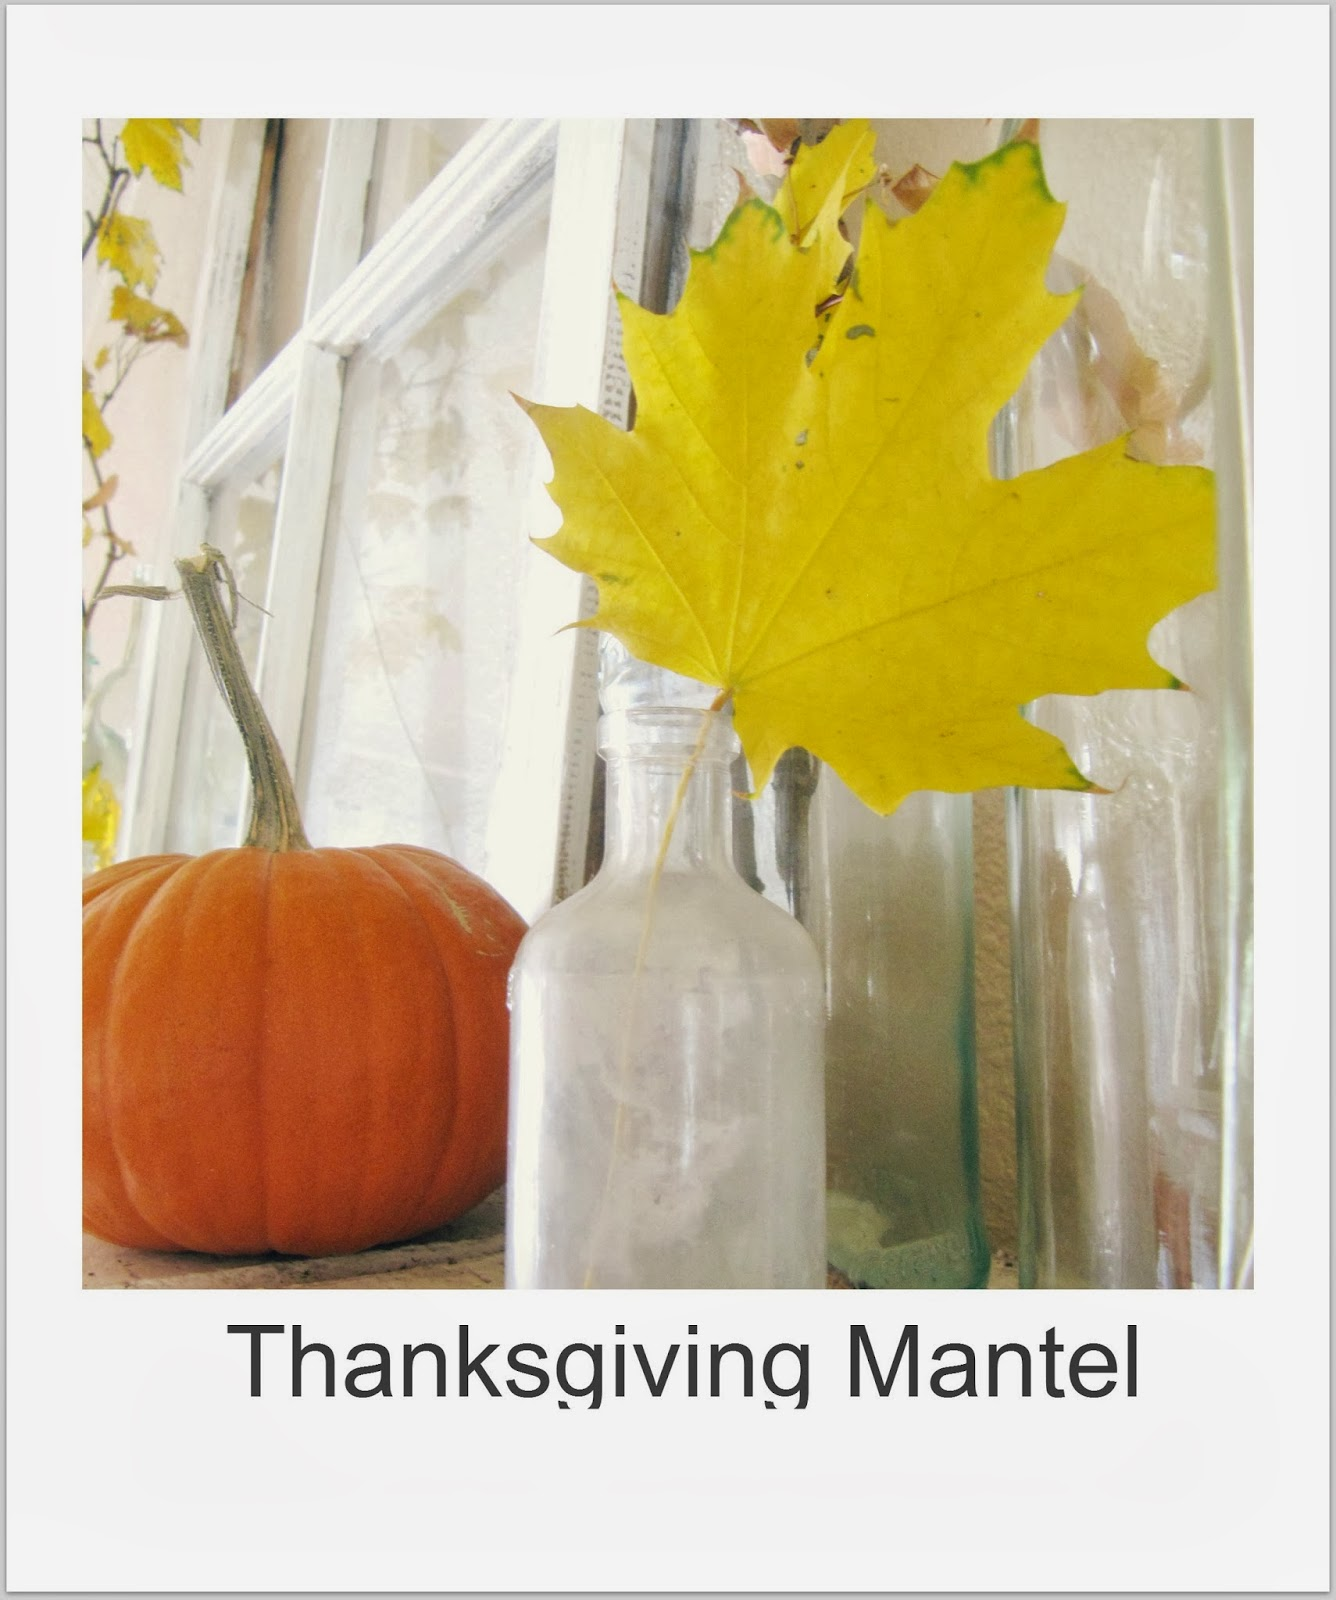 http://thewickerhouse.blogspot.com/2012/11/thanksgiving-mantel.html